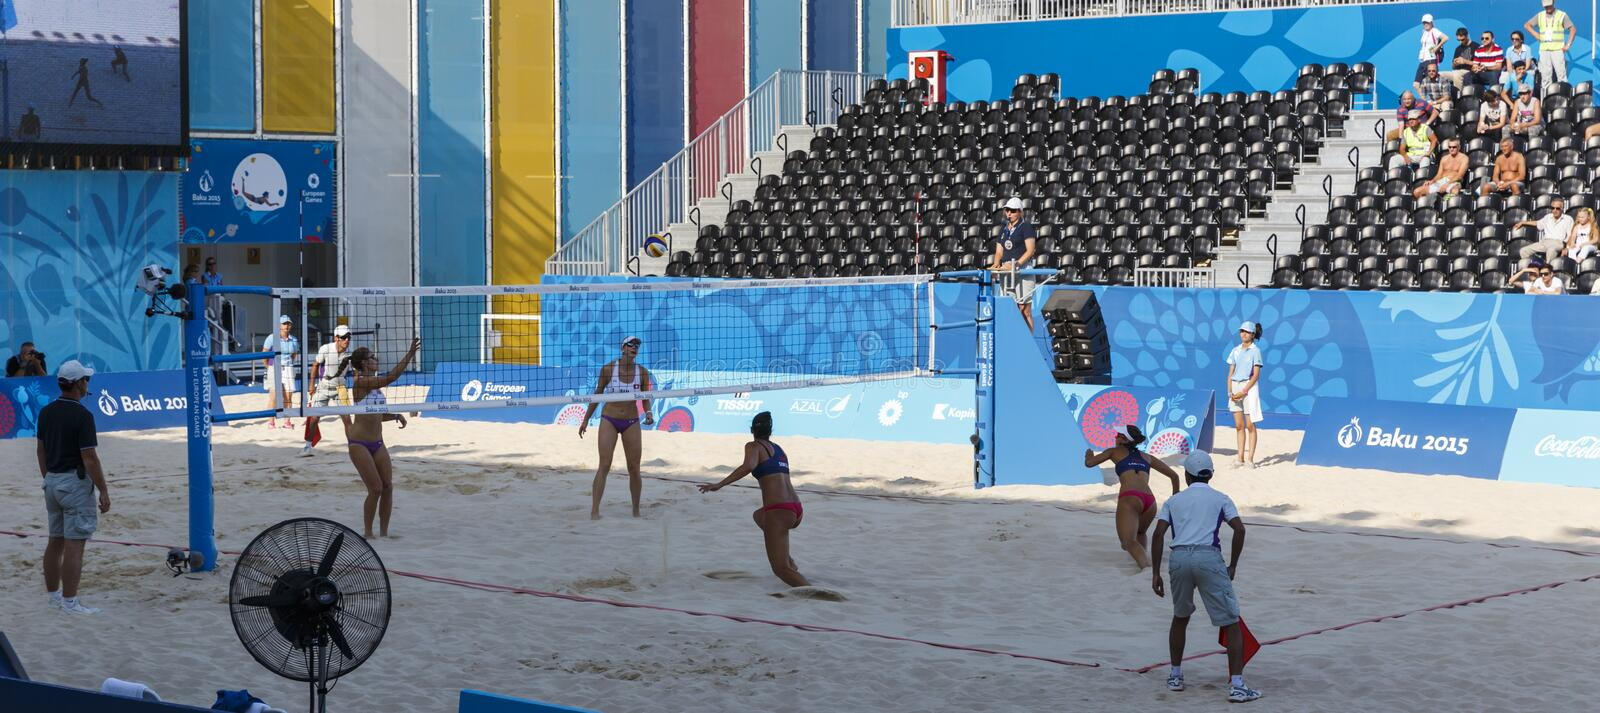 BAKOU, AZERBAIJAN-THE PREMIER GAMES-JUNE EUROPÉEN 20,2015-BEACH VOLL image libre de droits